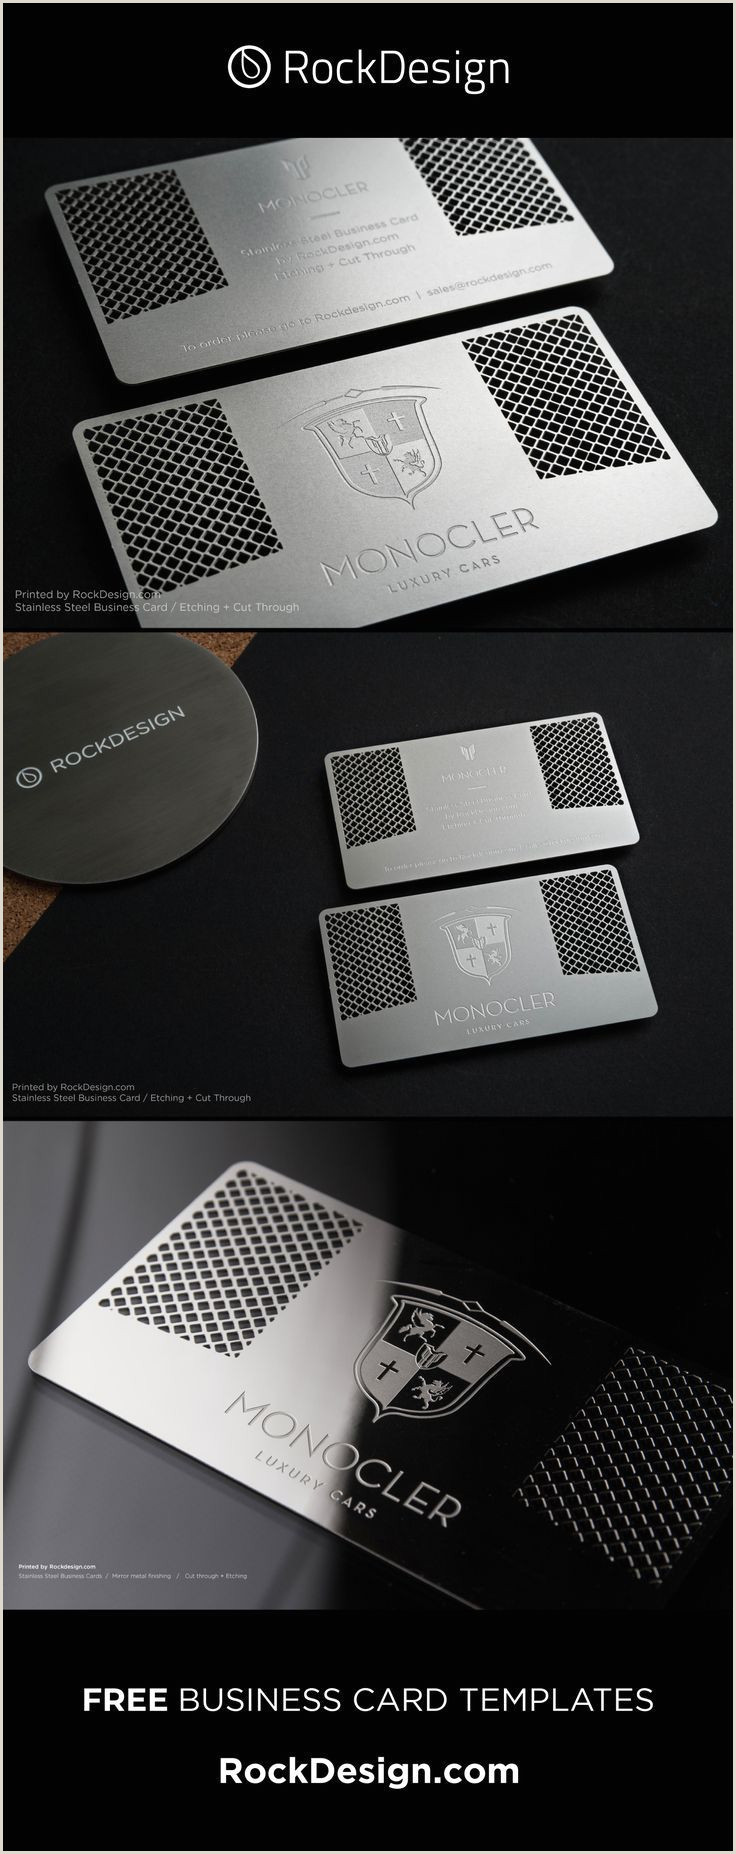 Original Business Card Modern And Sharp The Monocler Business Card Template Has